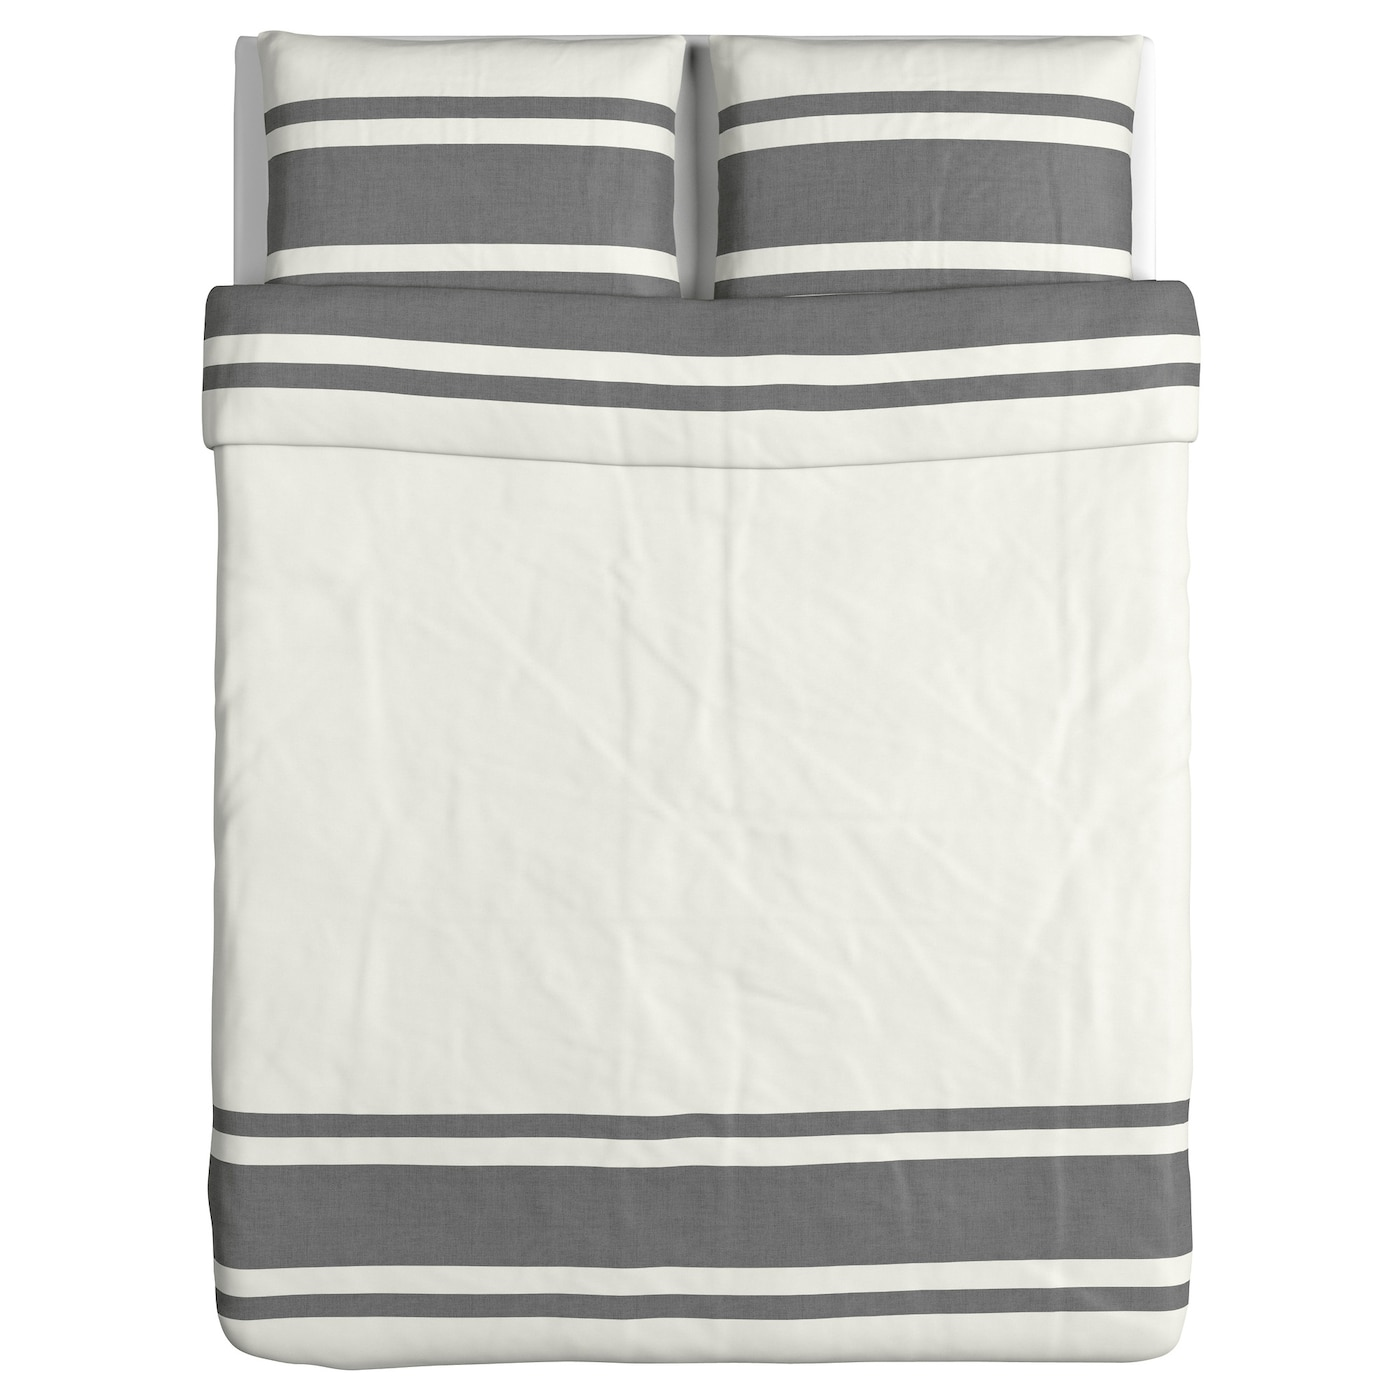 bj rnloka quilt cover and 2 pillowcases white black 200x200 50x80 cm ikea. Black Bedroom Furniture Sets. Home Design Ideas